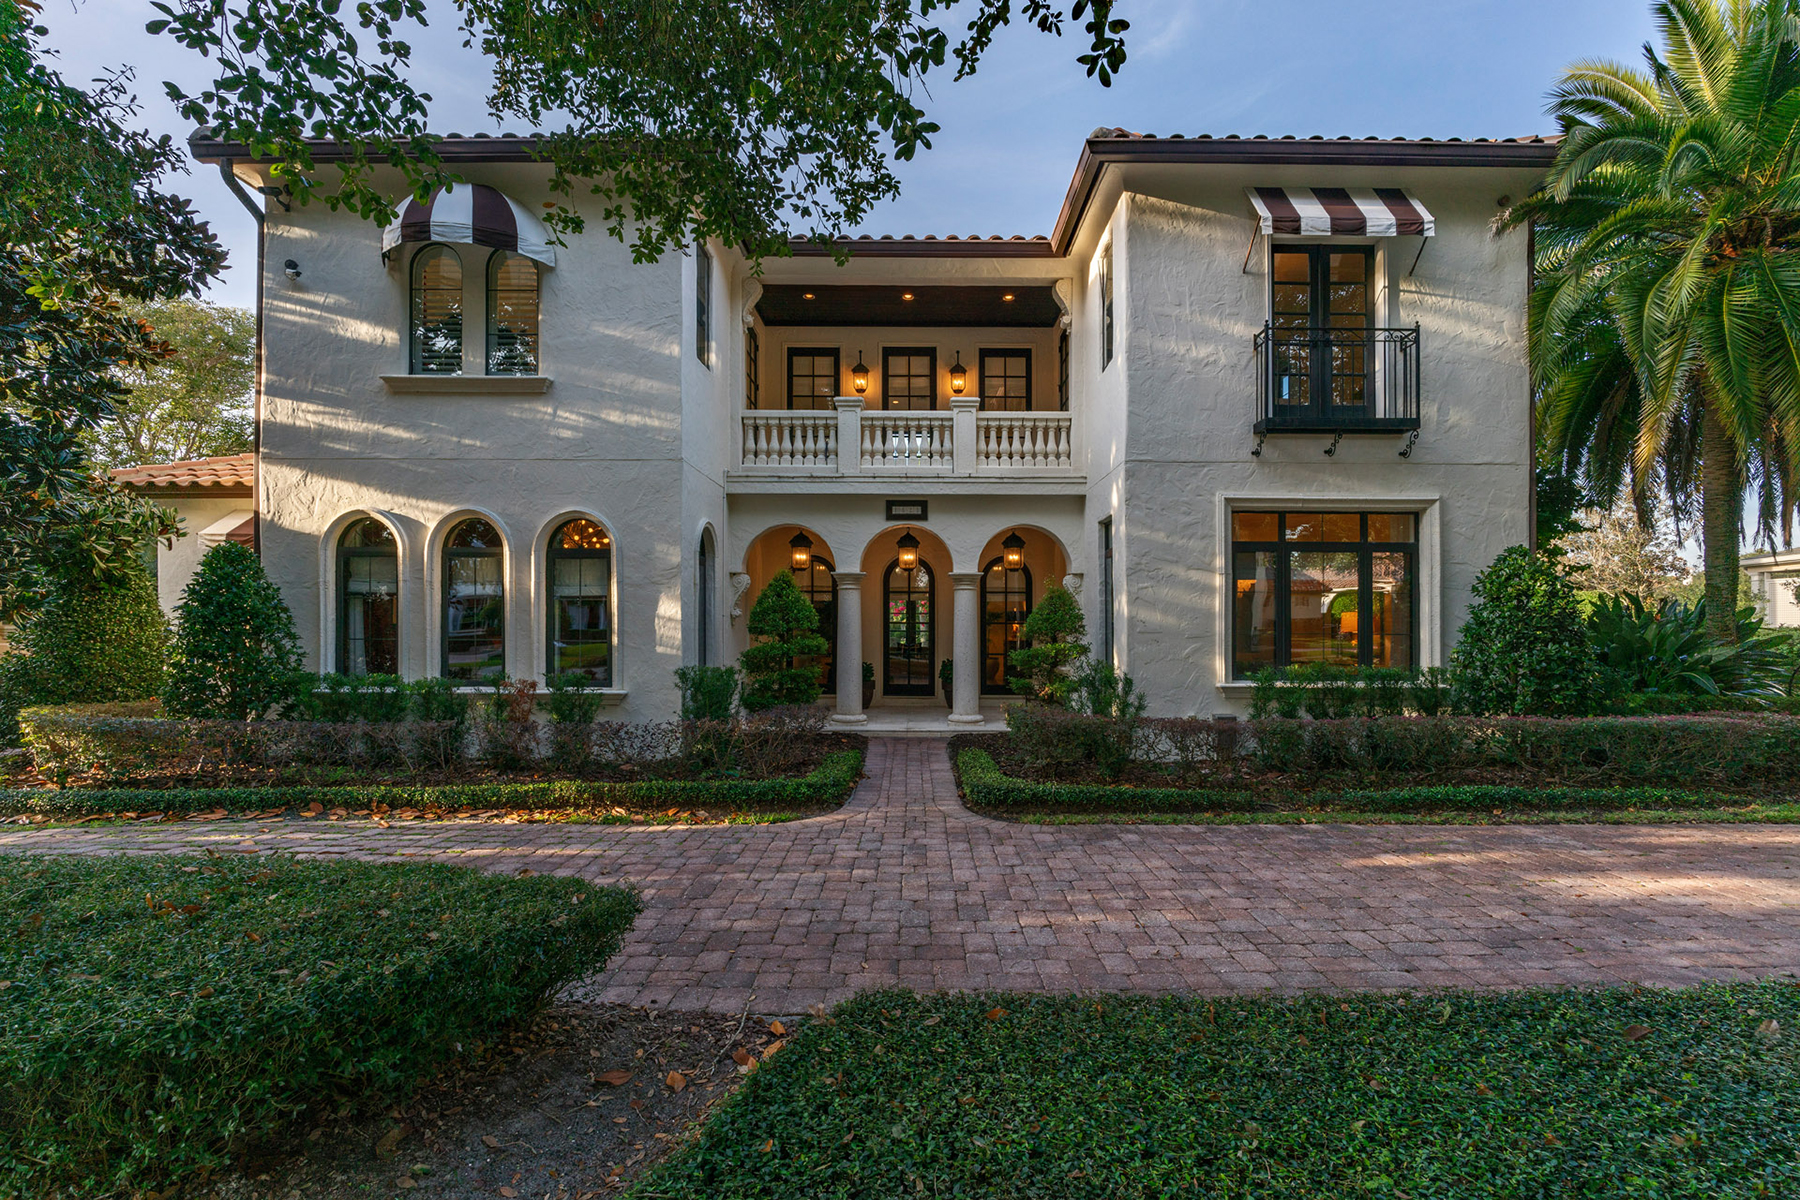 Single Family Homes for Sale at WINTER PARK 1421 Holts Grove Cir Winter Park, Florida 32789 United States